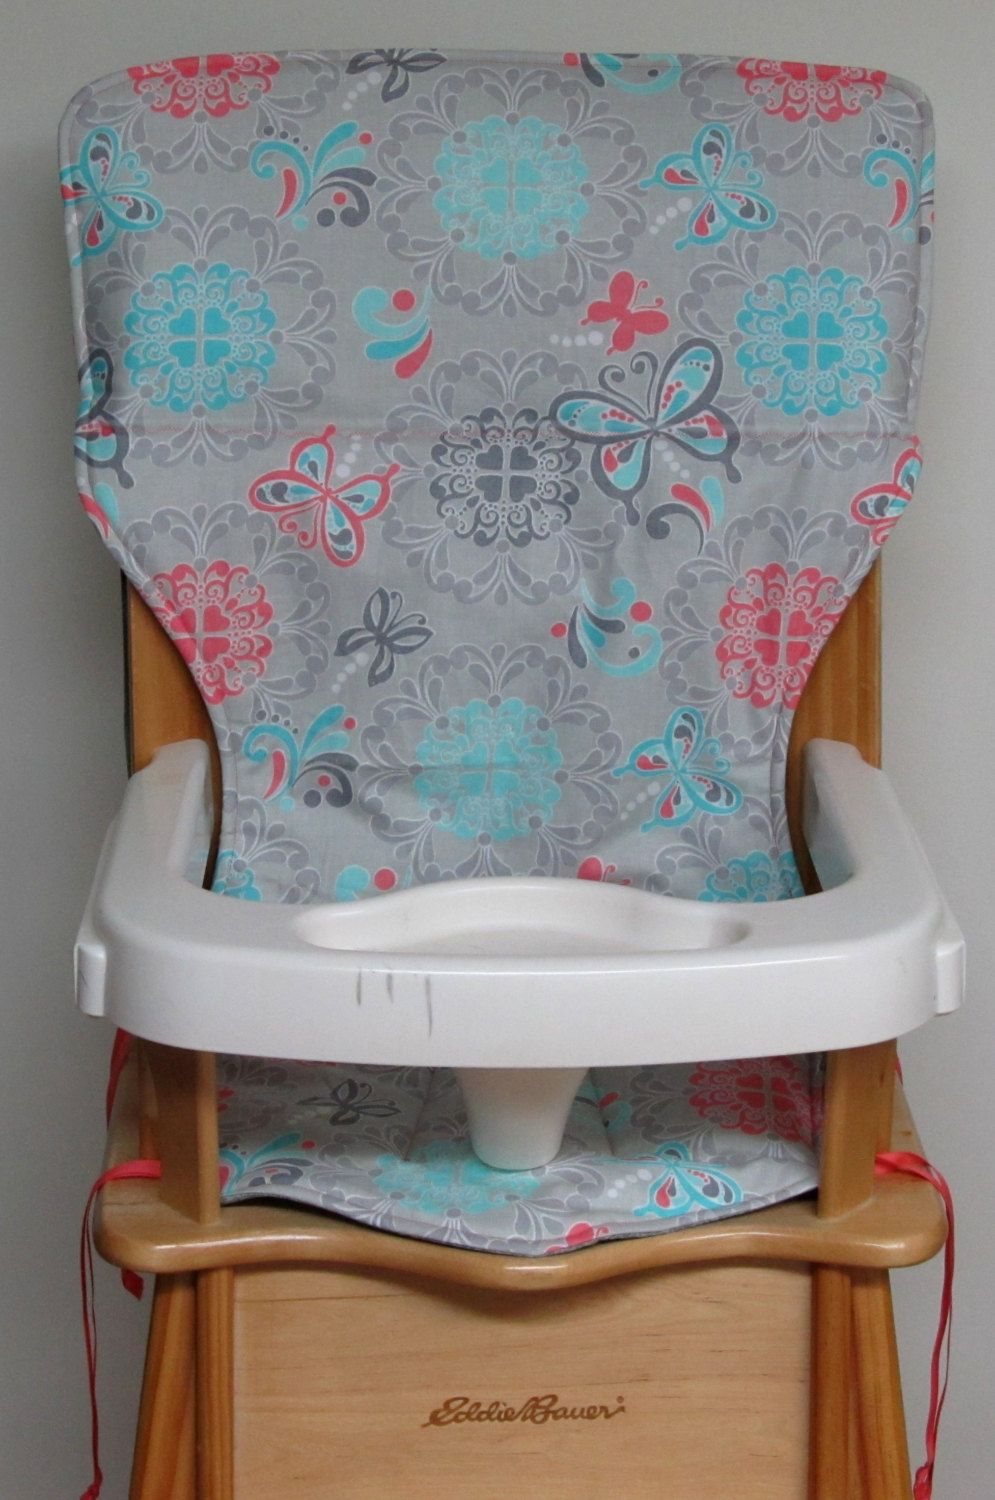 Eddie Bauer Wooden High Chair Pad Replacement Cover Butterflies